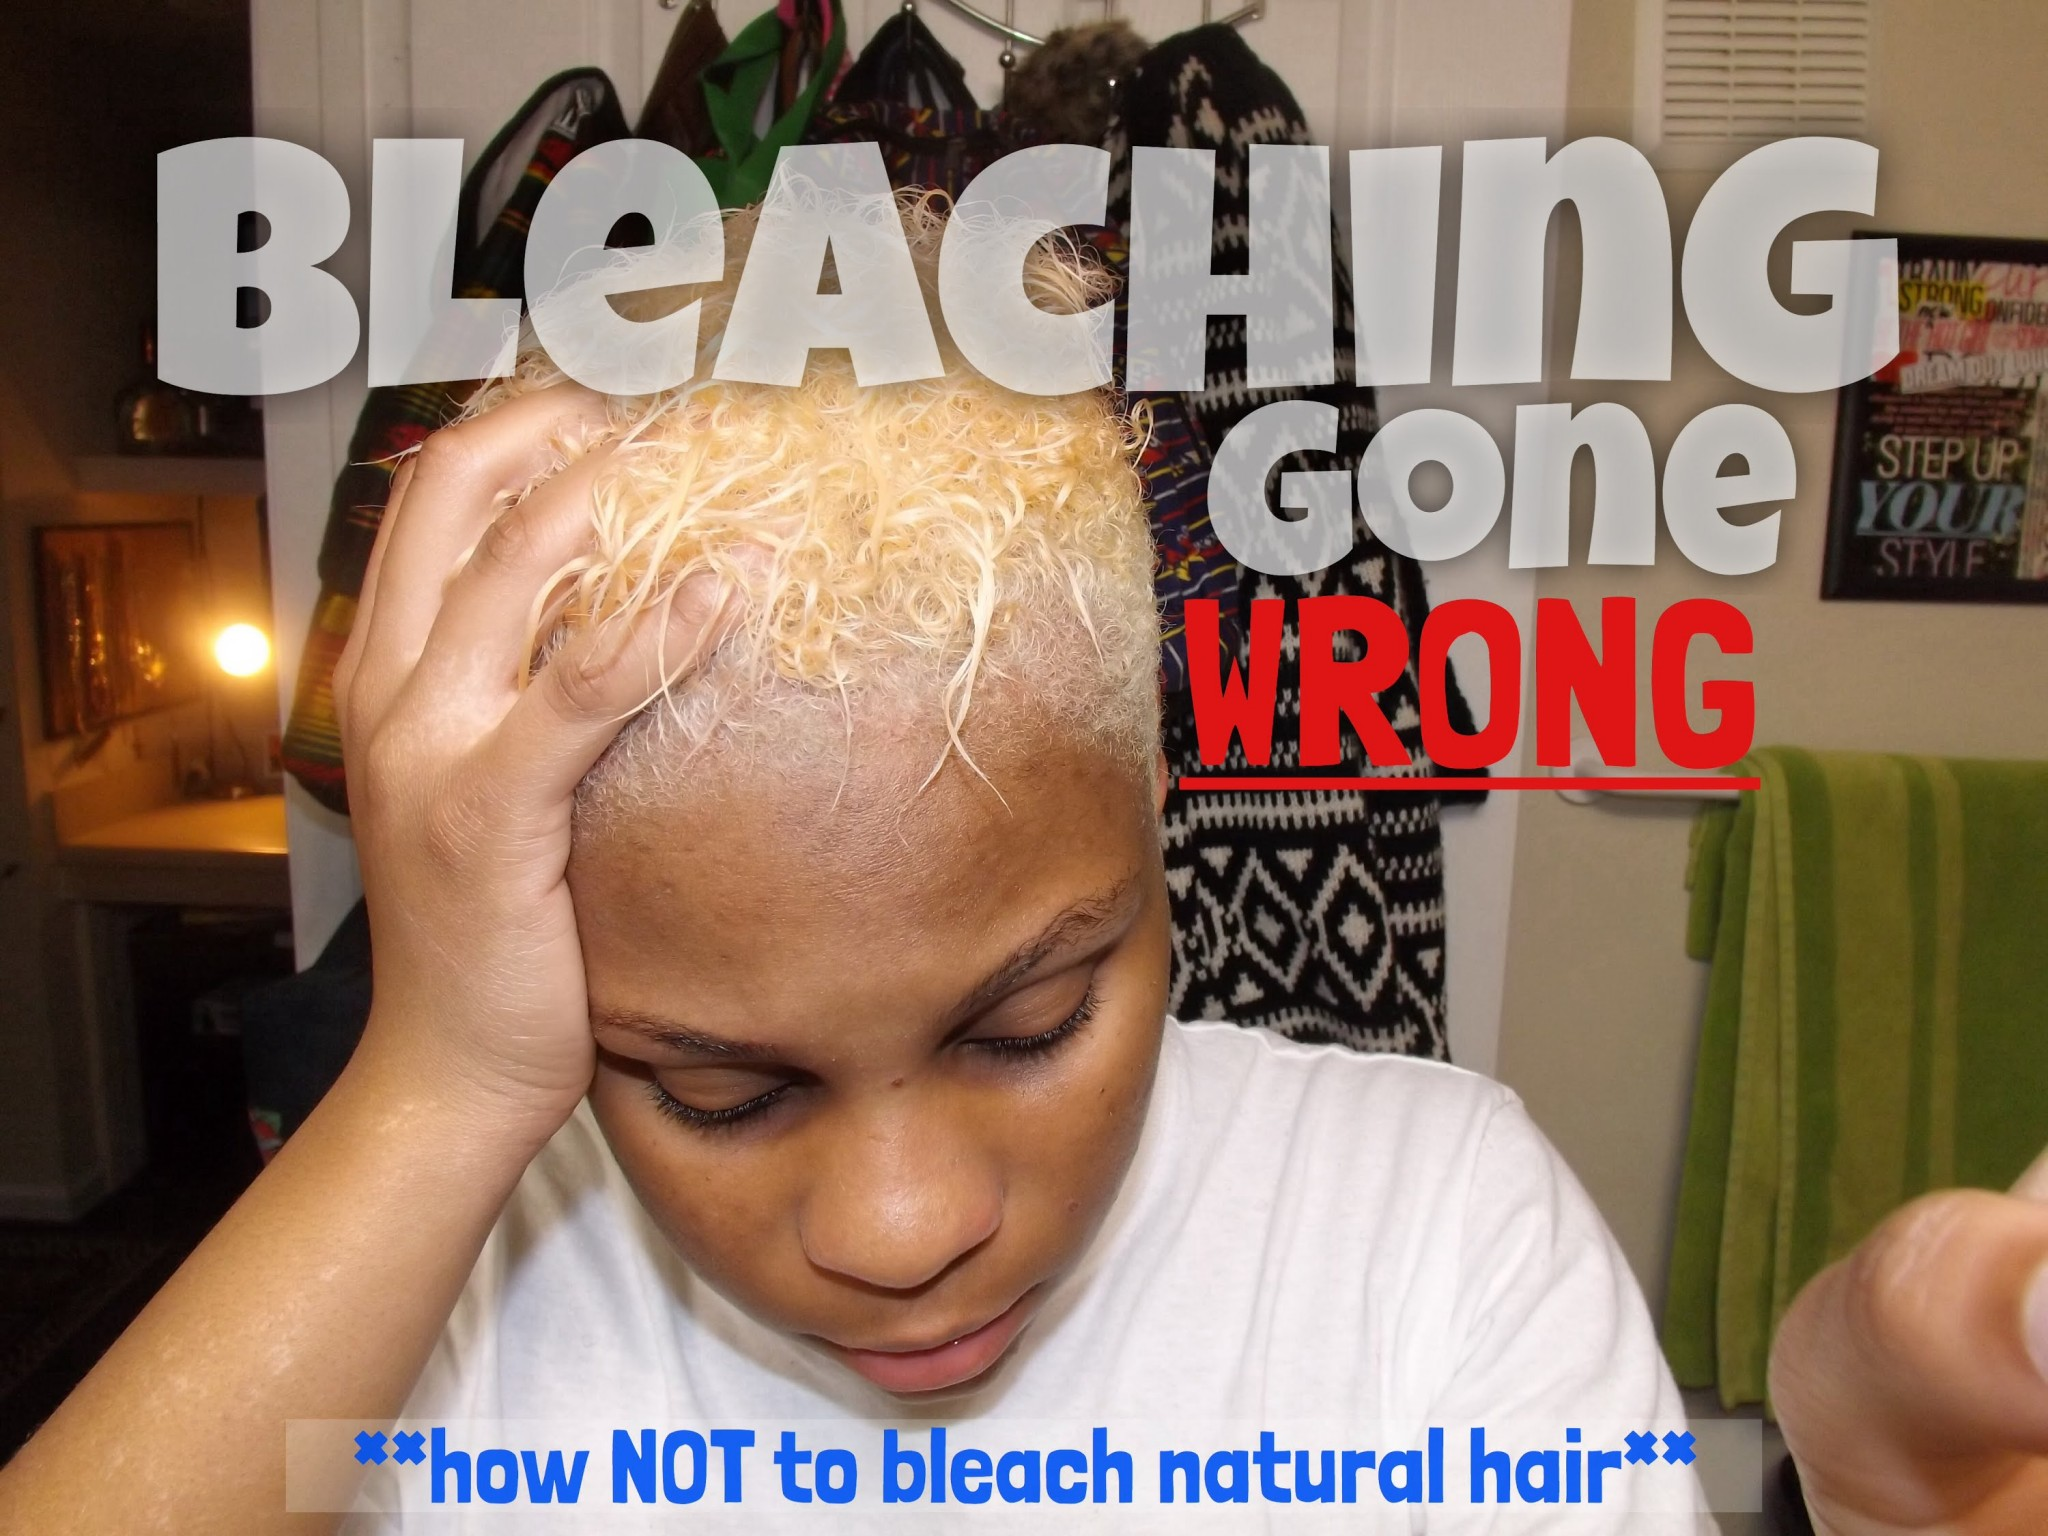 Hair Bleaching And Coloring Gone Wrong And How To Recover